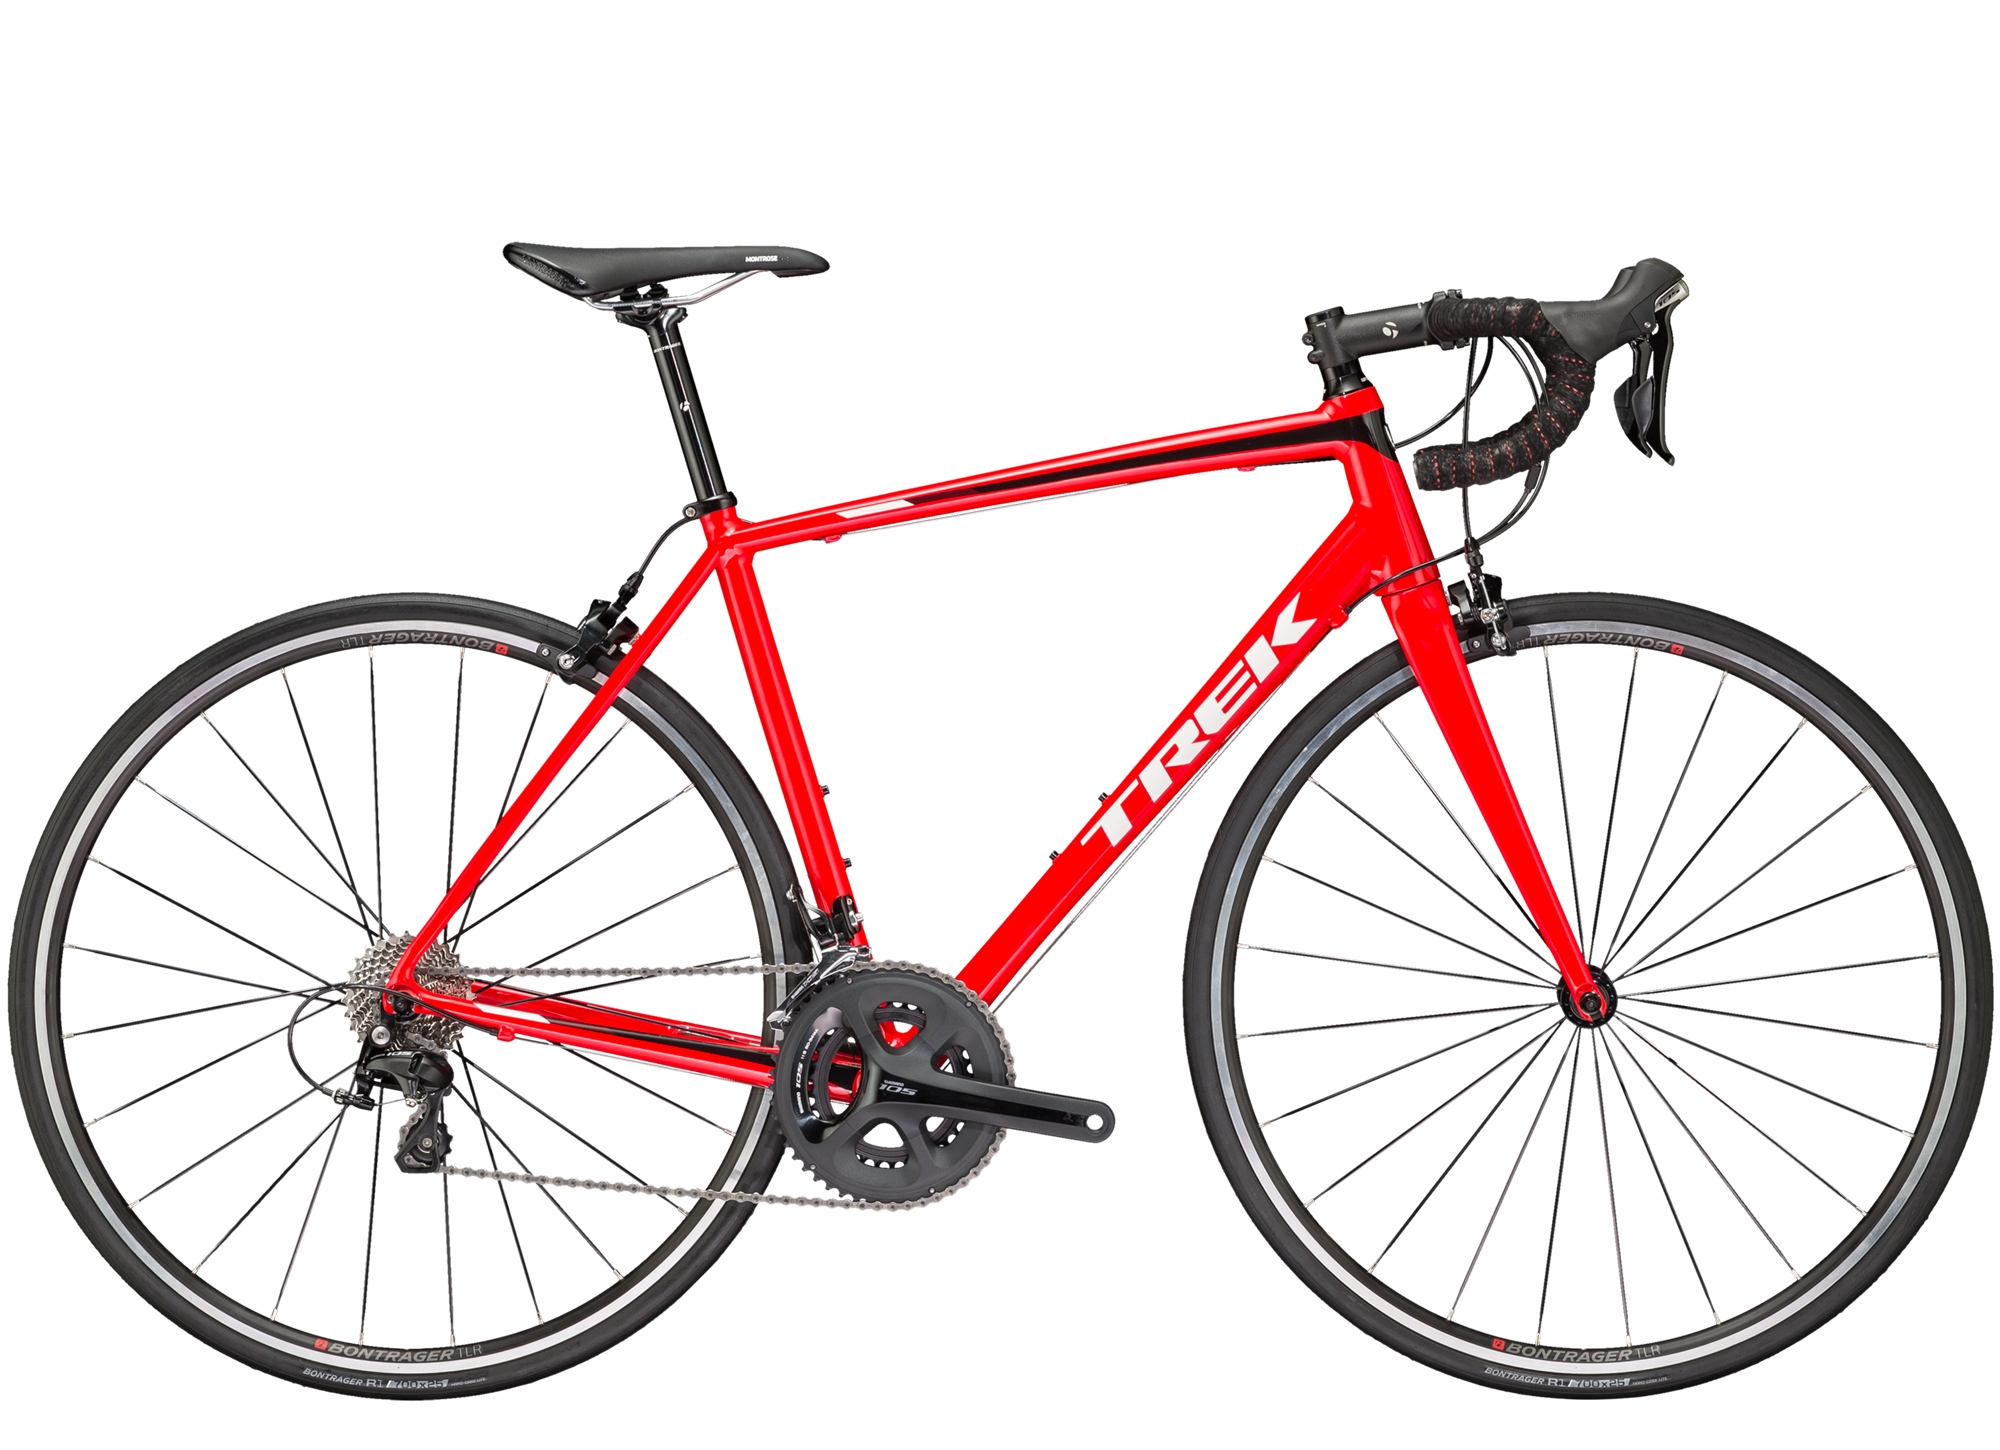 https://trek.scene7.com/is/image/TrekBicycleProducts/1406000_2018_B_1_Emonda_ALR_5?wid=2000